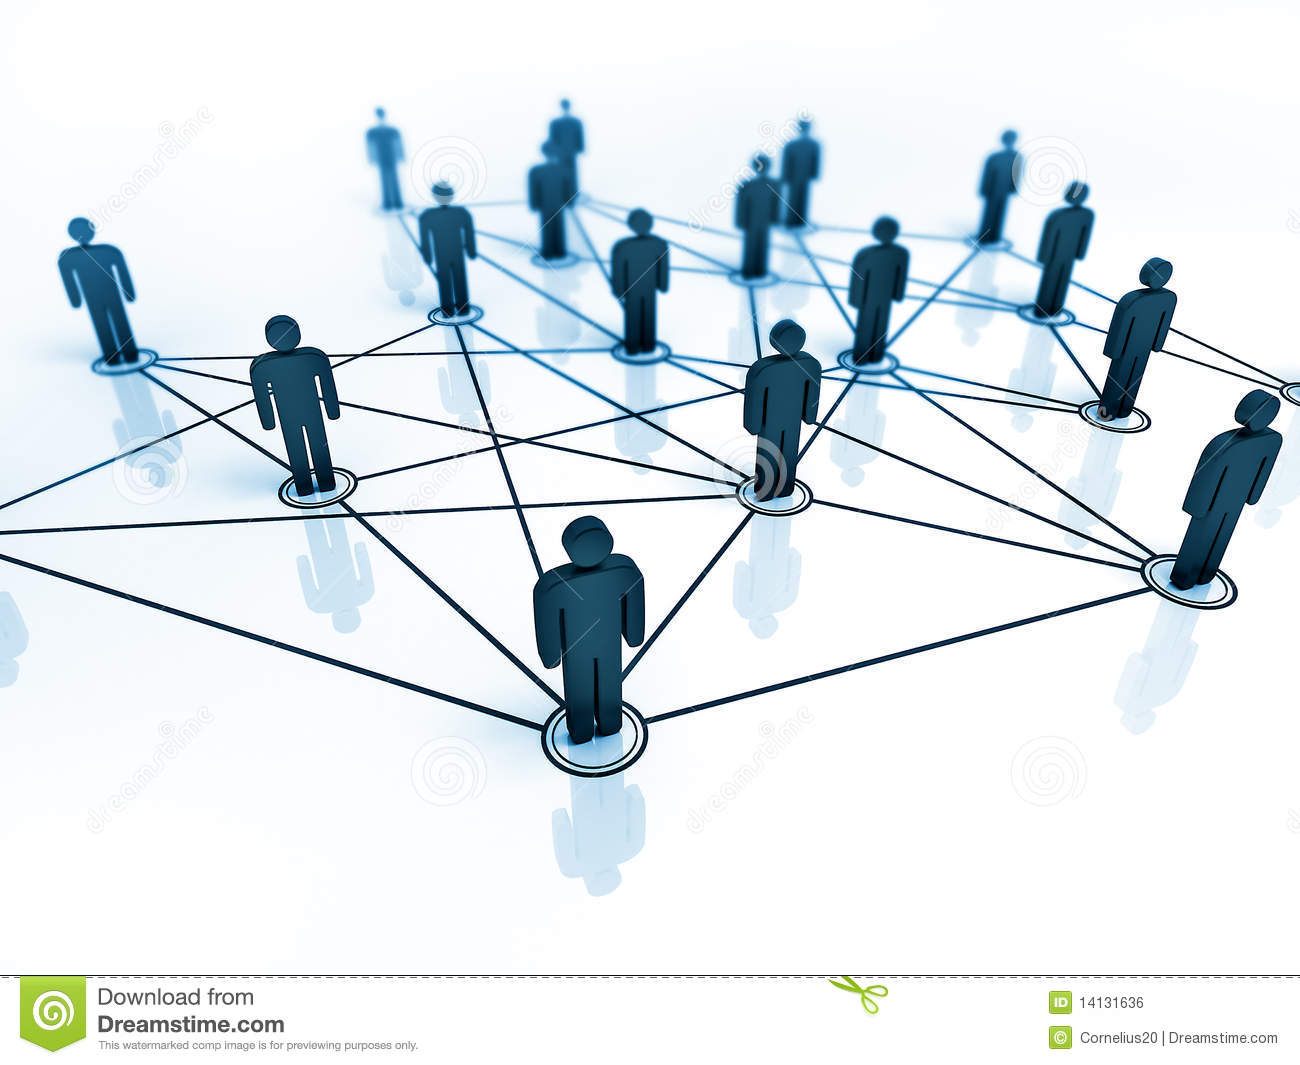 Connected People Royalty Free Stock Image - Image: 14131636